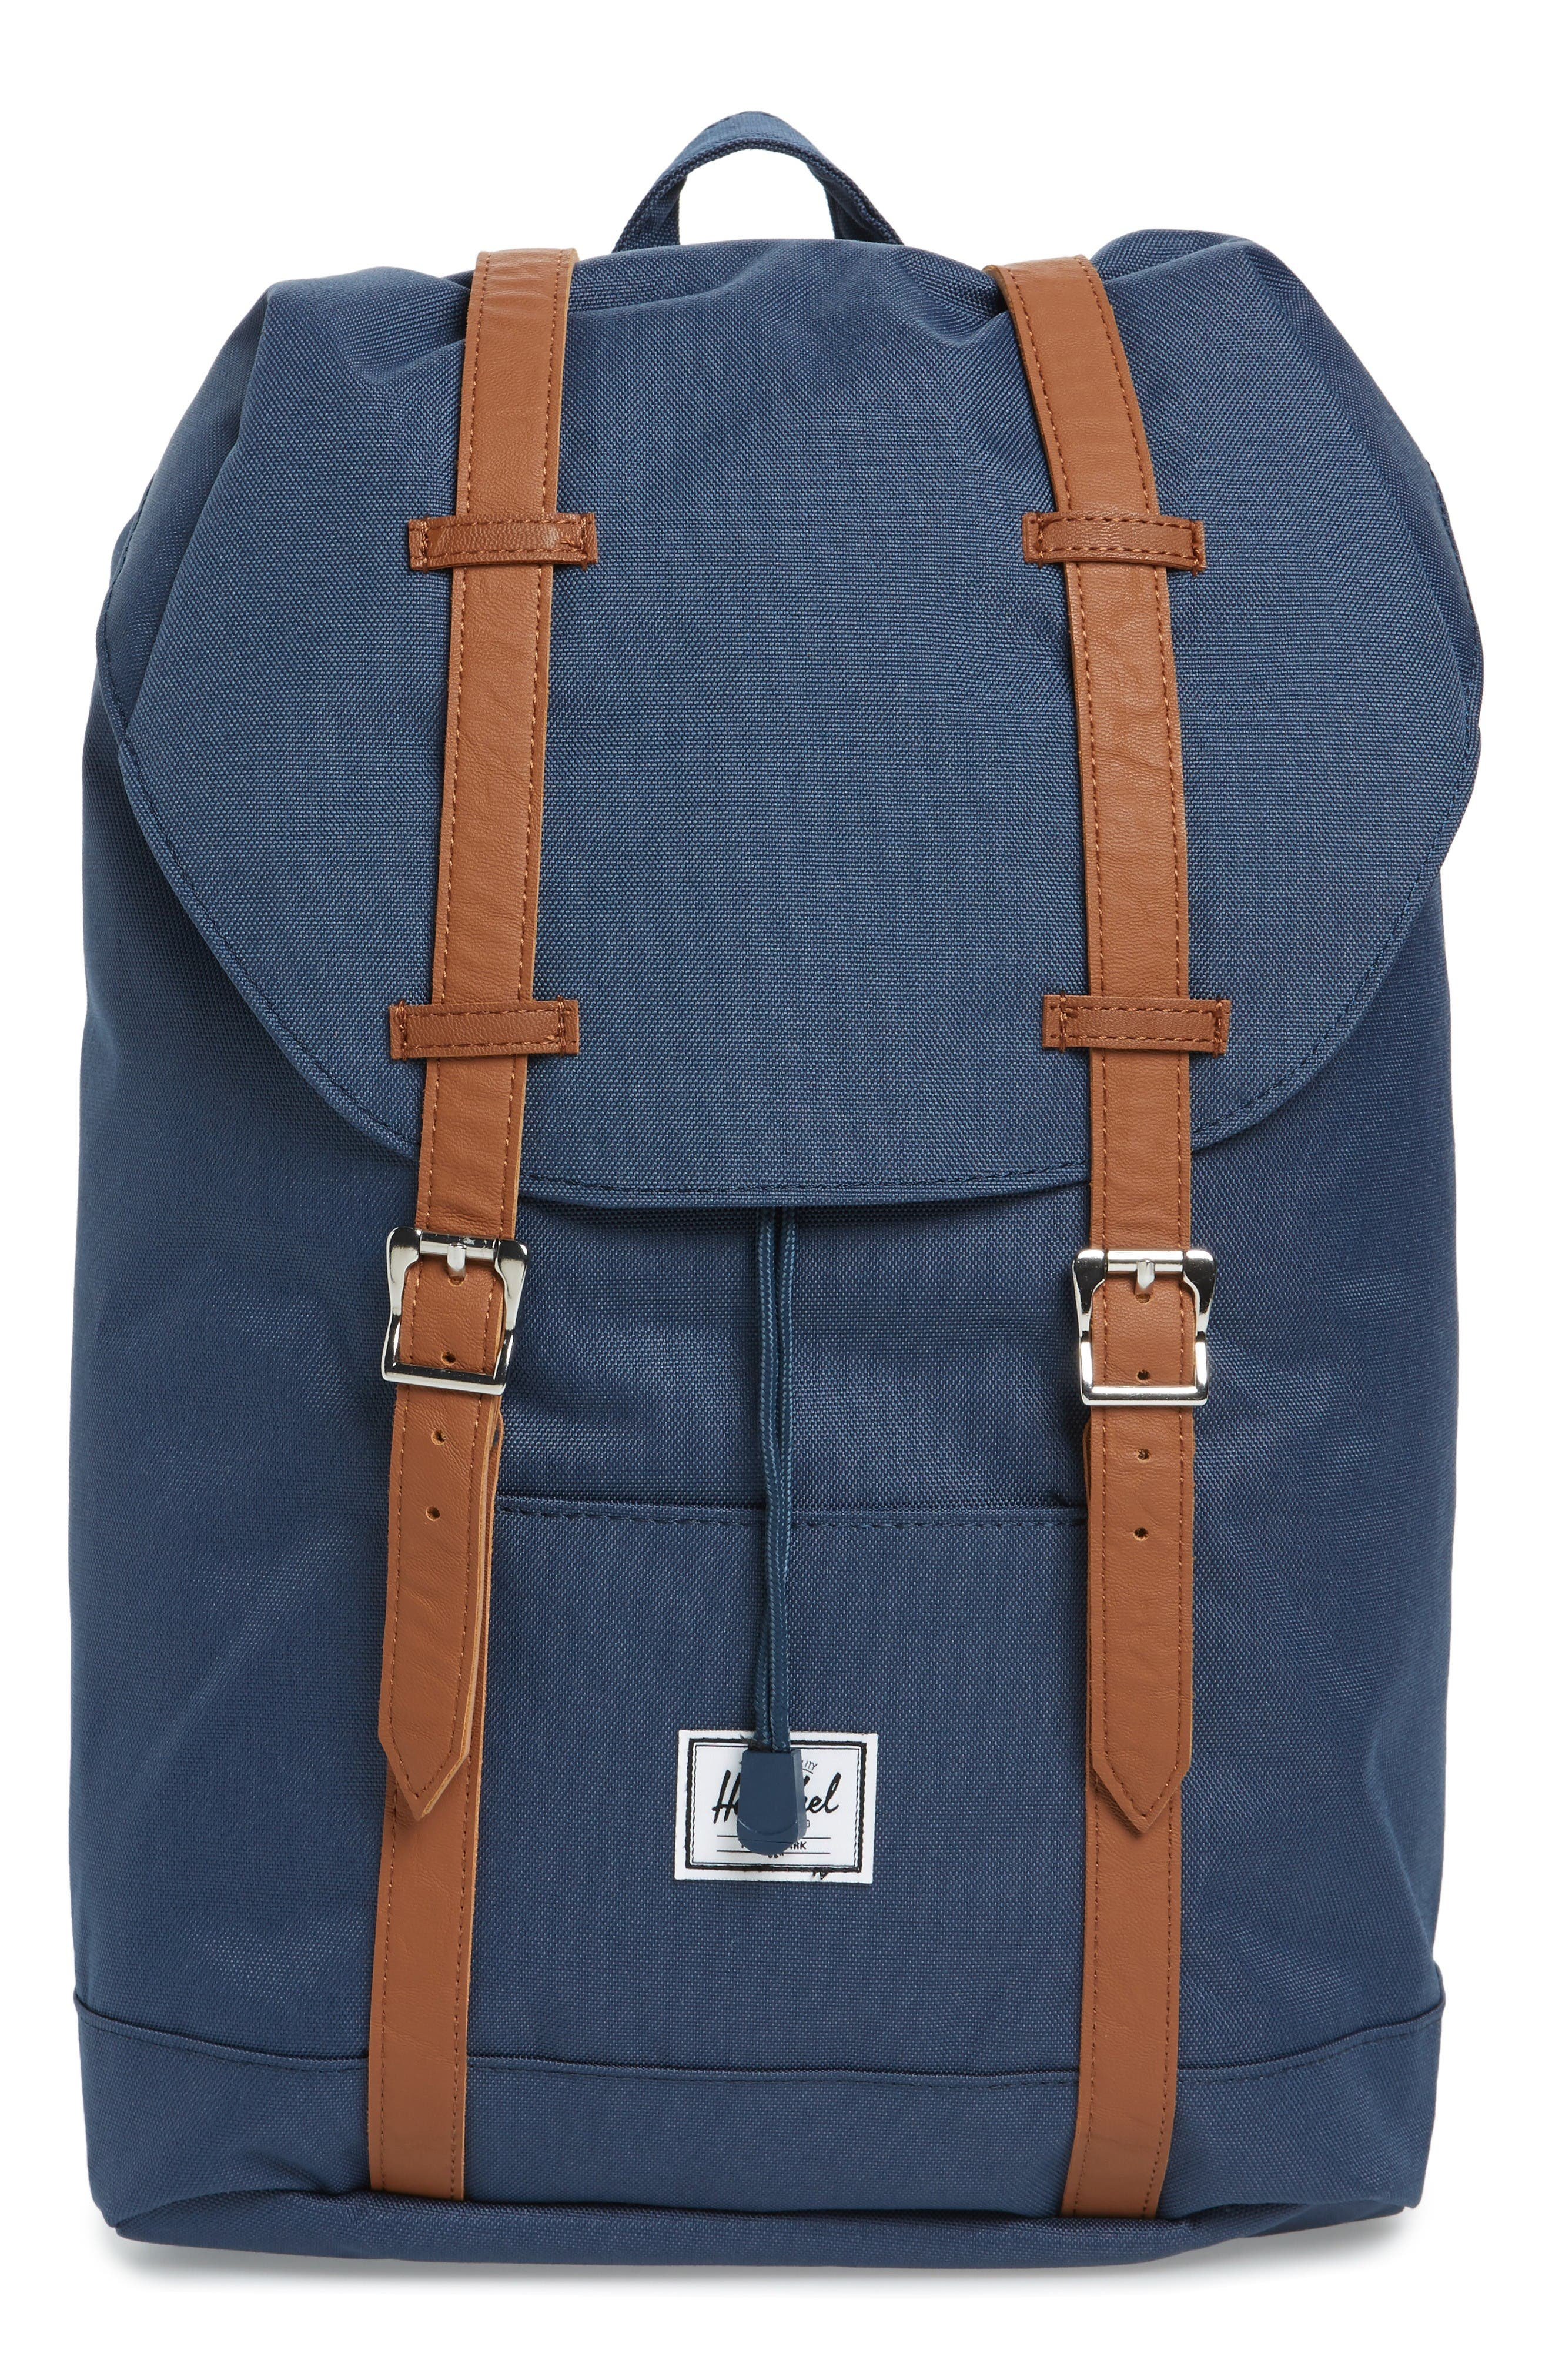 Retreat Mid Volume Backpack,                             Main thumbnail 1, color,                             Navy